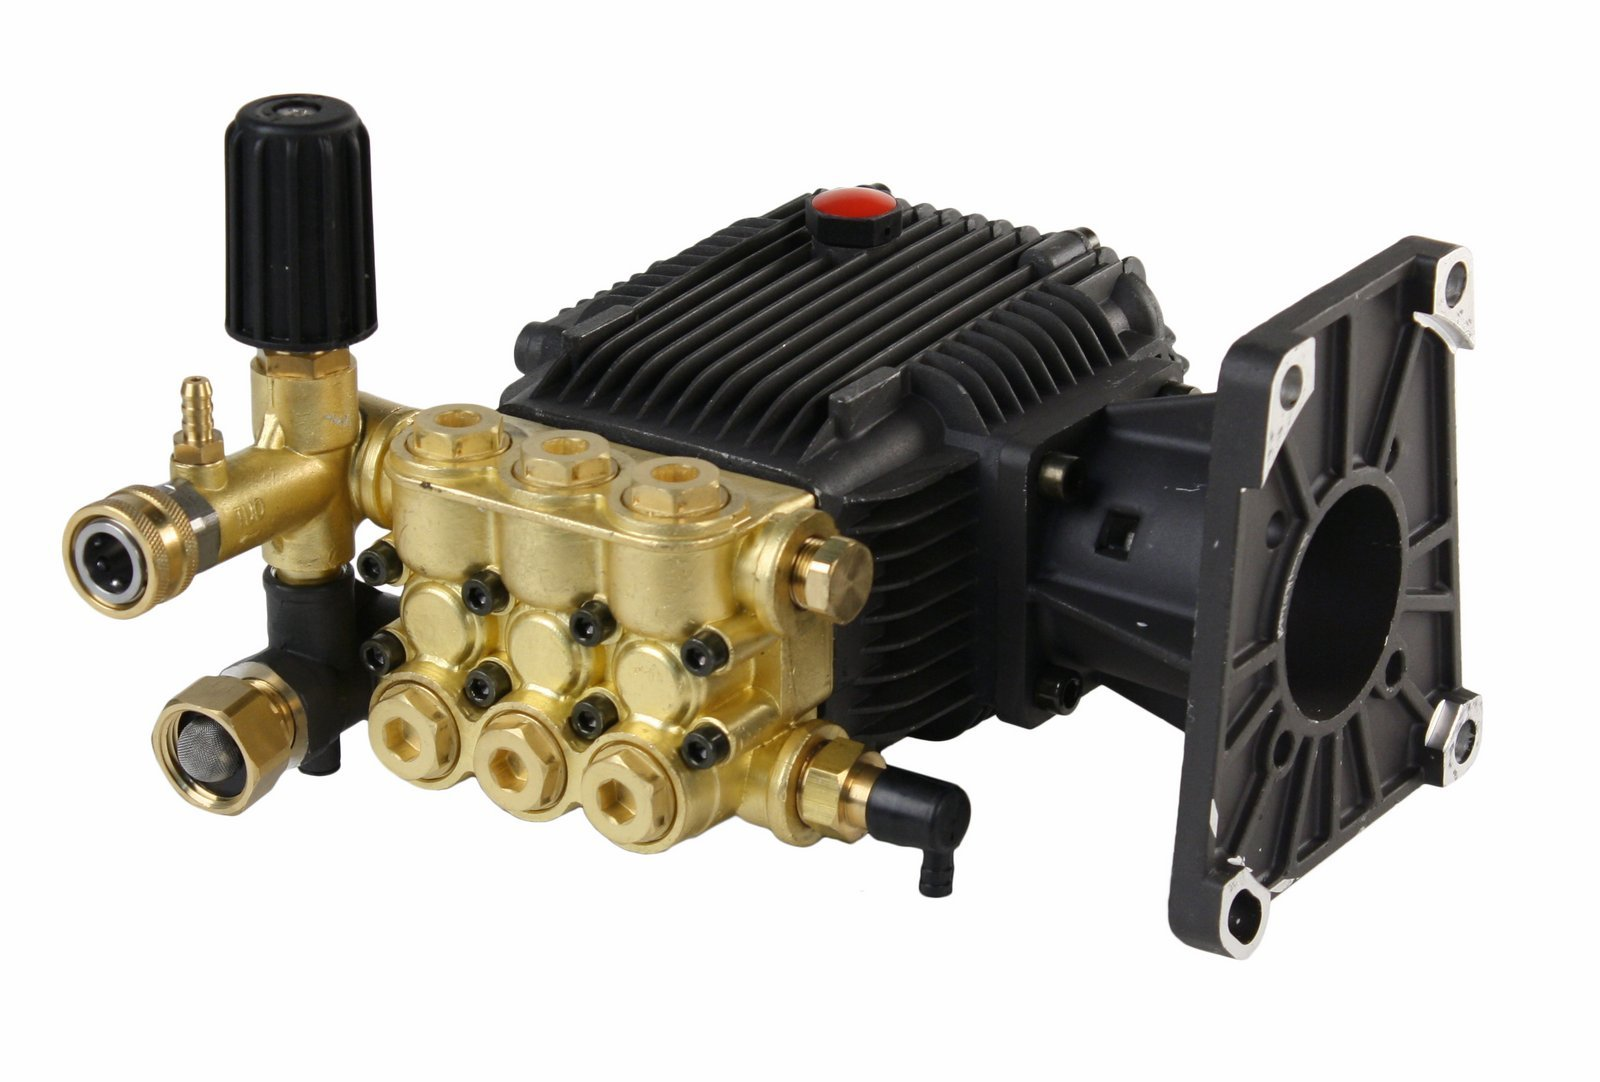 EOPE Triplex High Pressure Power Washer Pump 4.7 GPM 3600 PSI 1'' Hollow Shaft fits Cat General AR